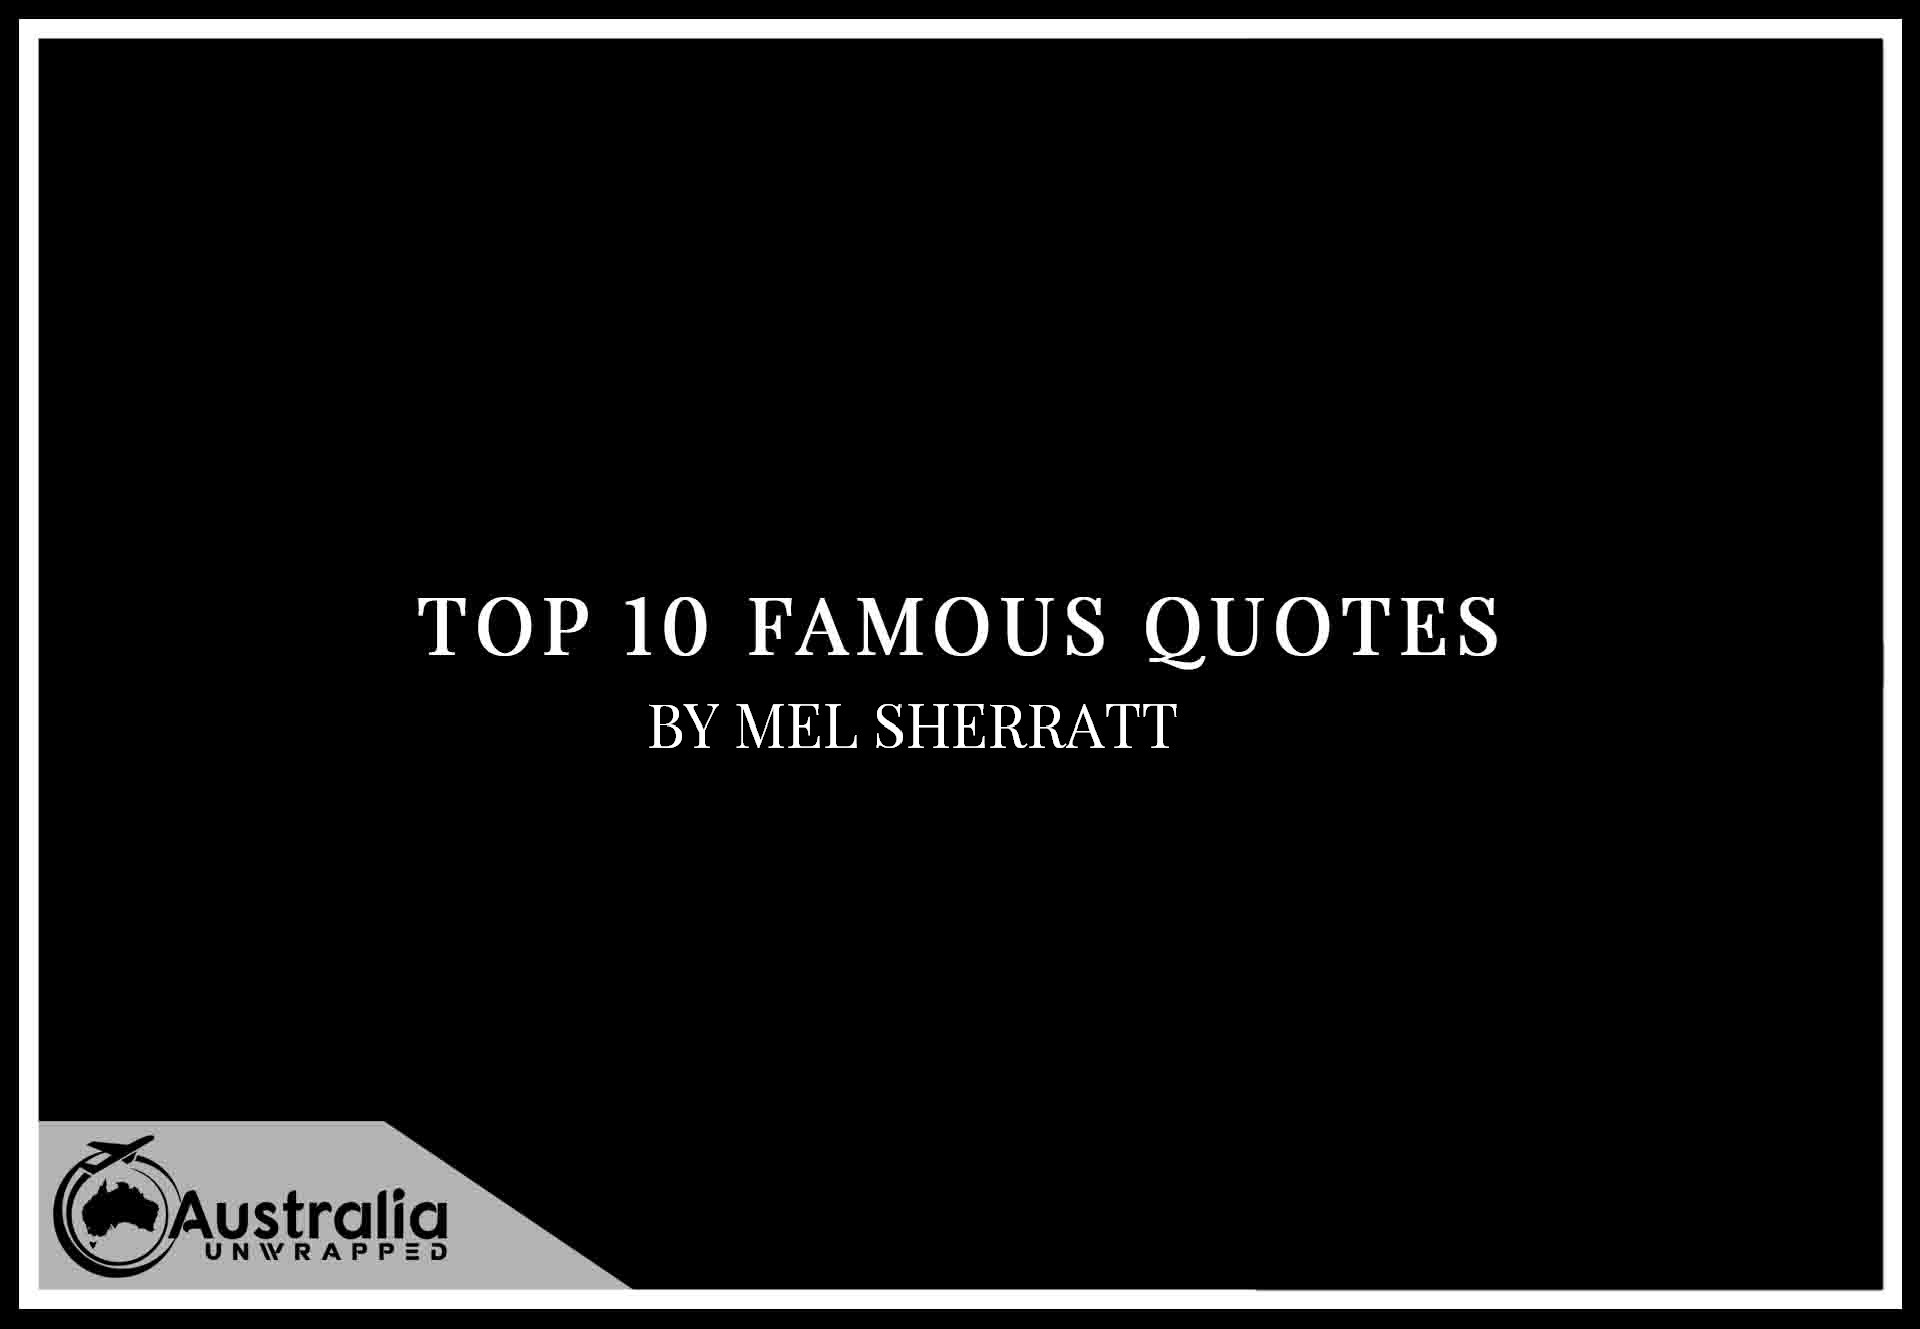 Top 10 Famous Quotes by Author Mel Sherratt